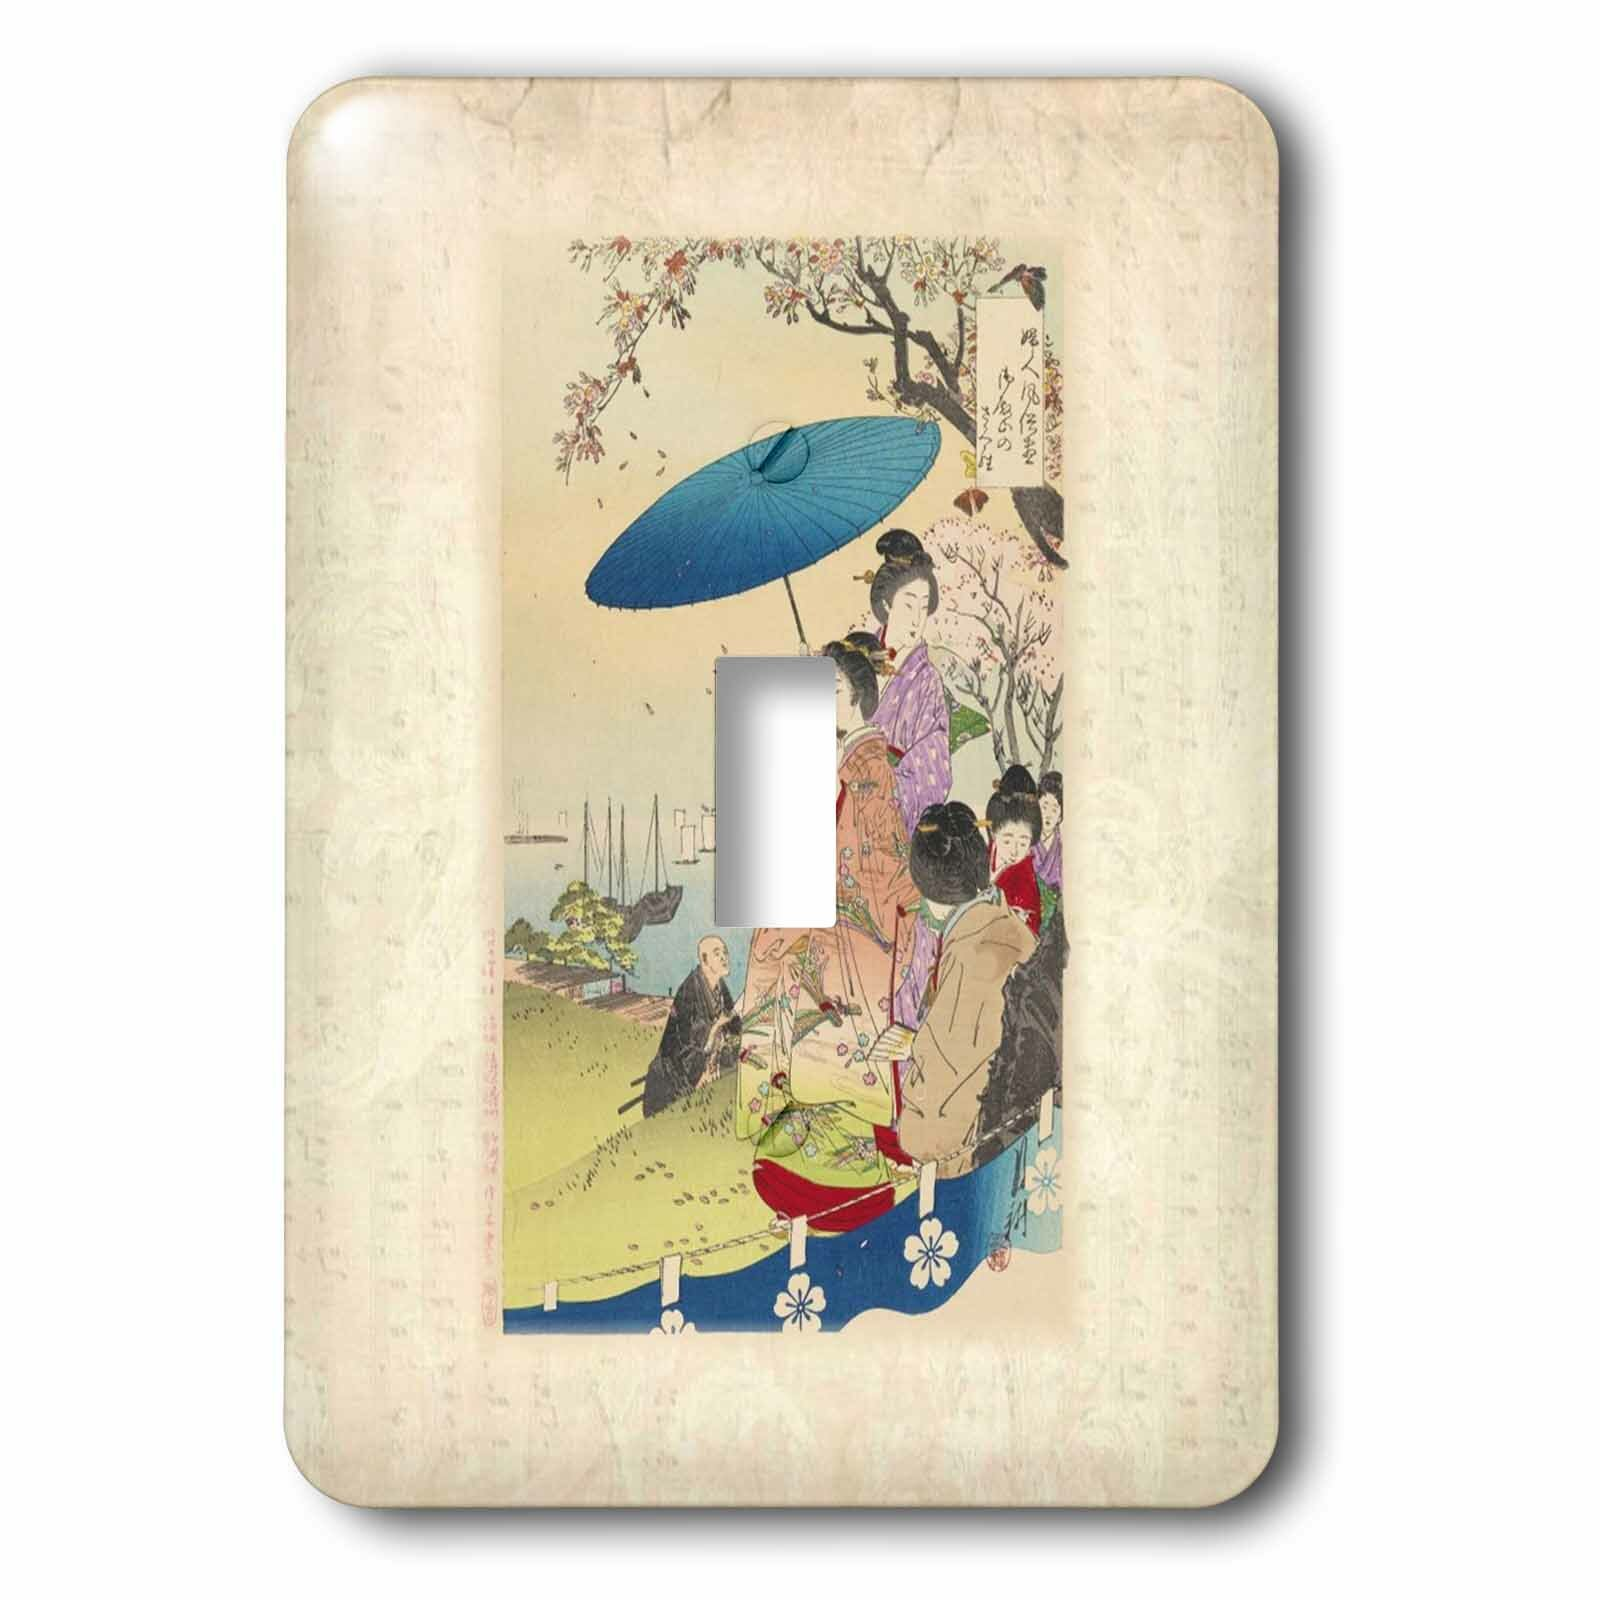 3drose Geishas Under Cherry Blossom 1 Gang Toggle Light Switch Wall Plate Wayfair